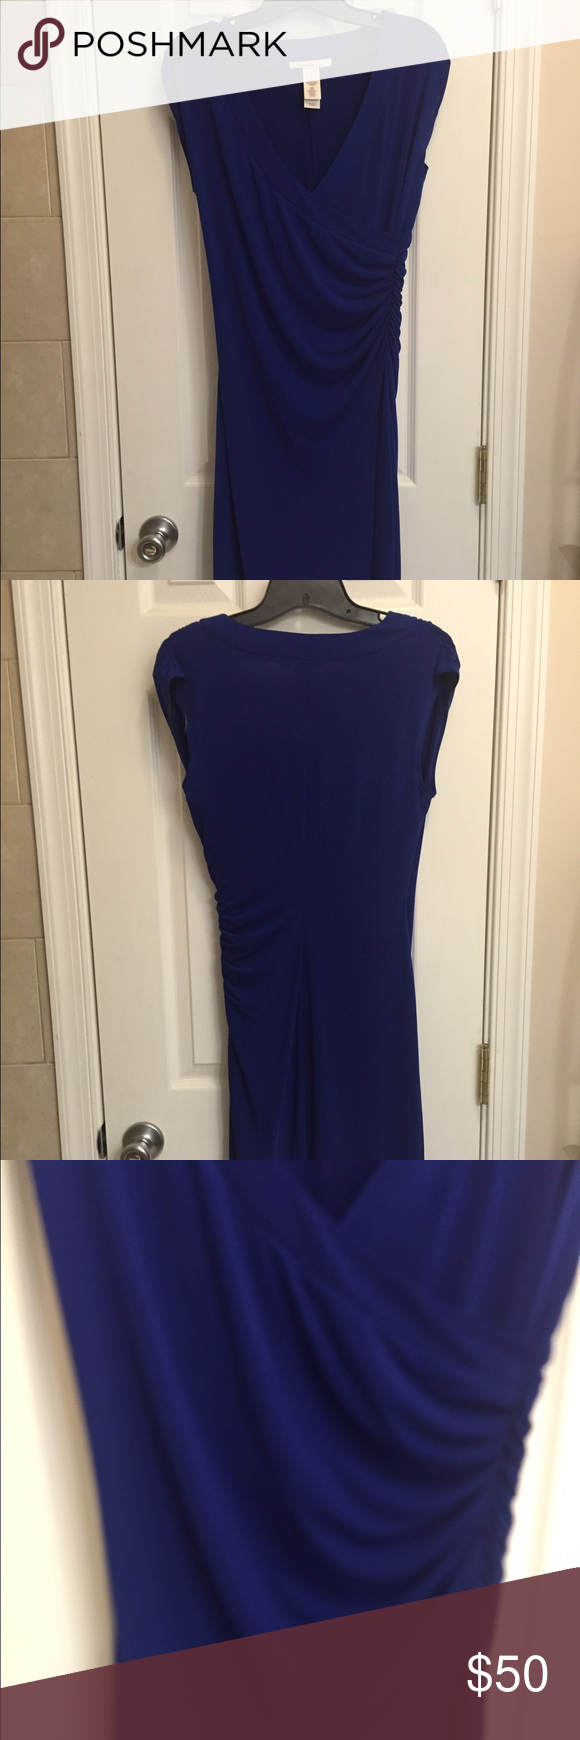 Laundry by design lake blue dress NWT Absolutely stunning Blue